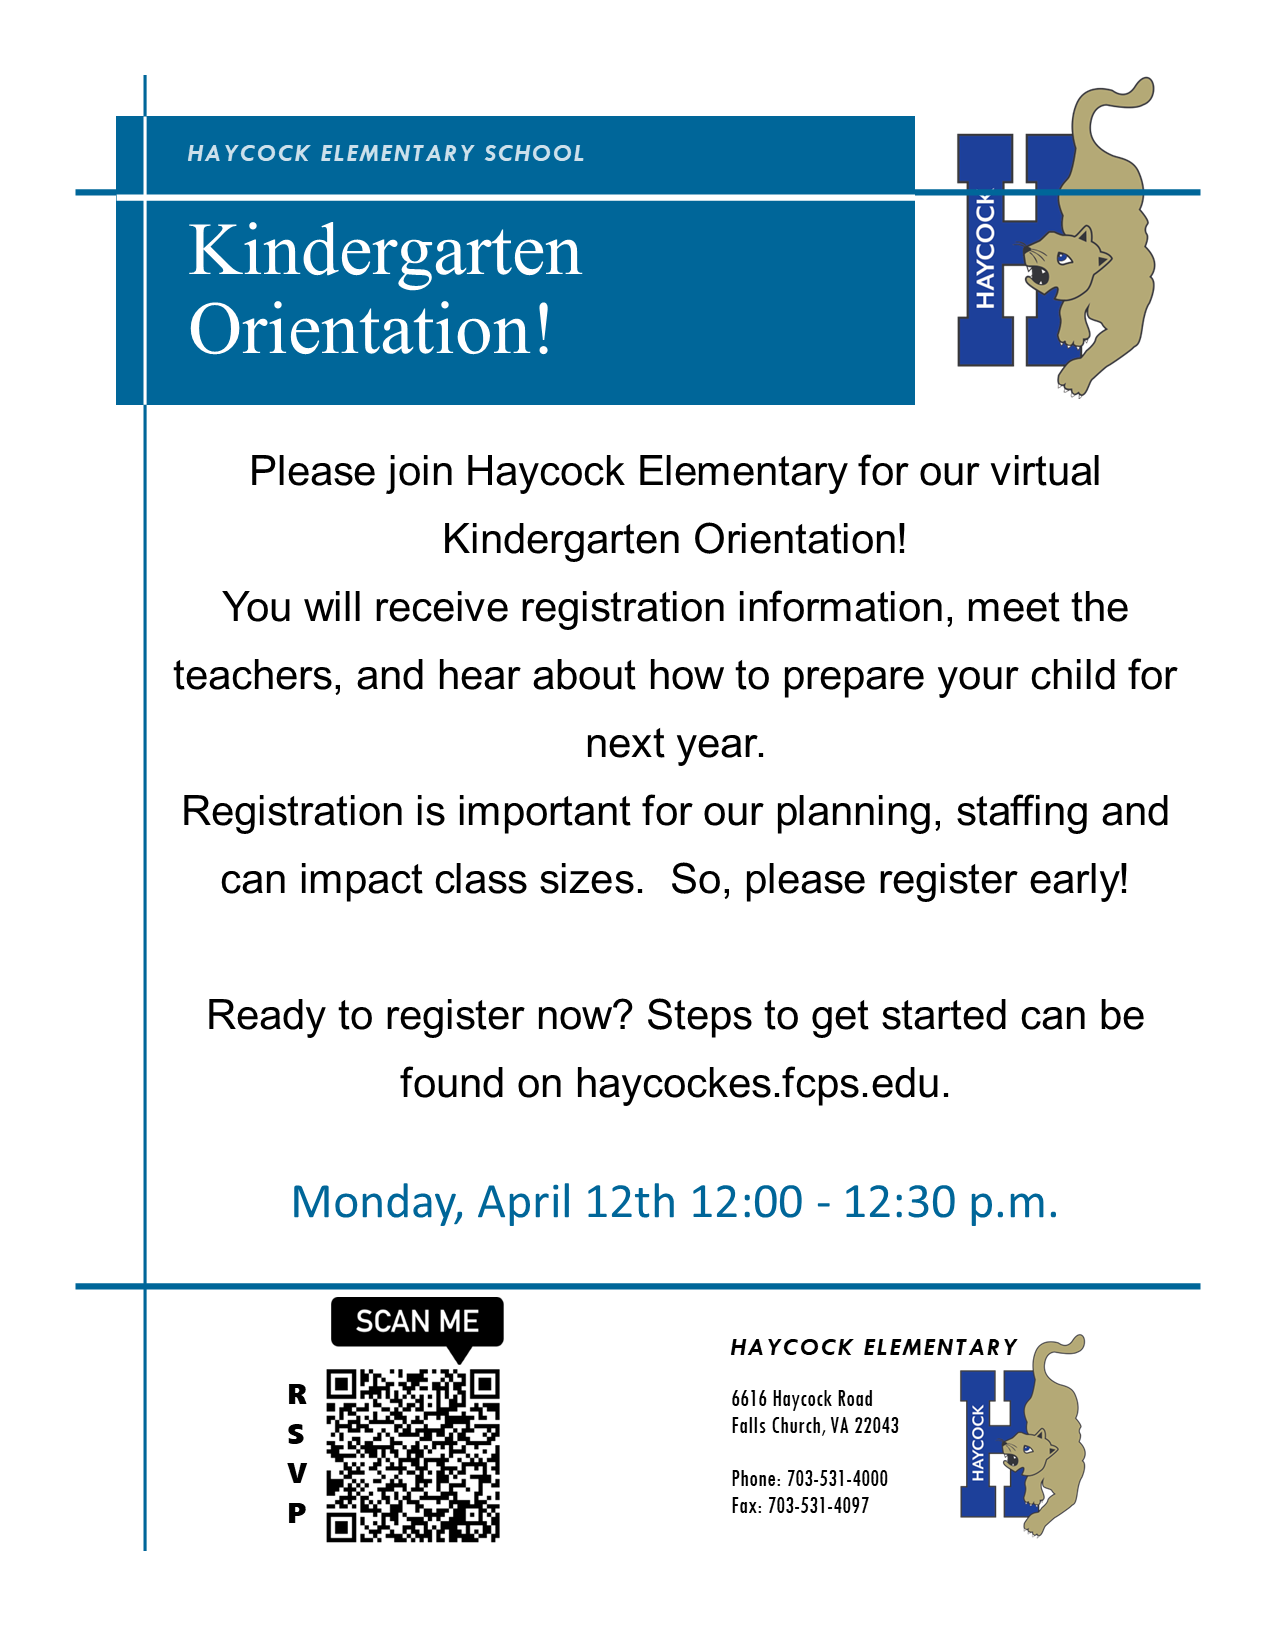 Kinder Orientation Flyer April 12th 12-12:30 pm